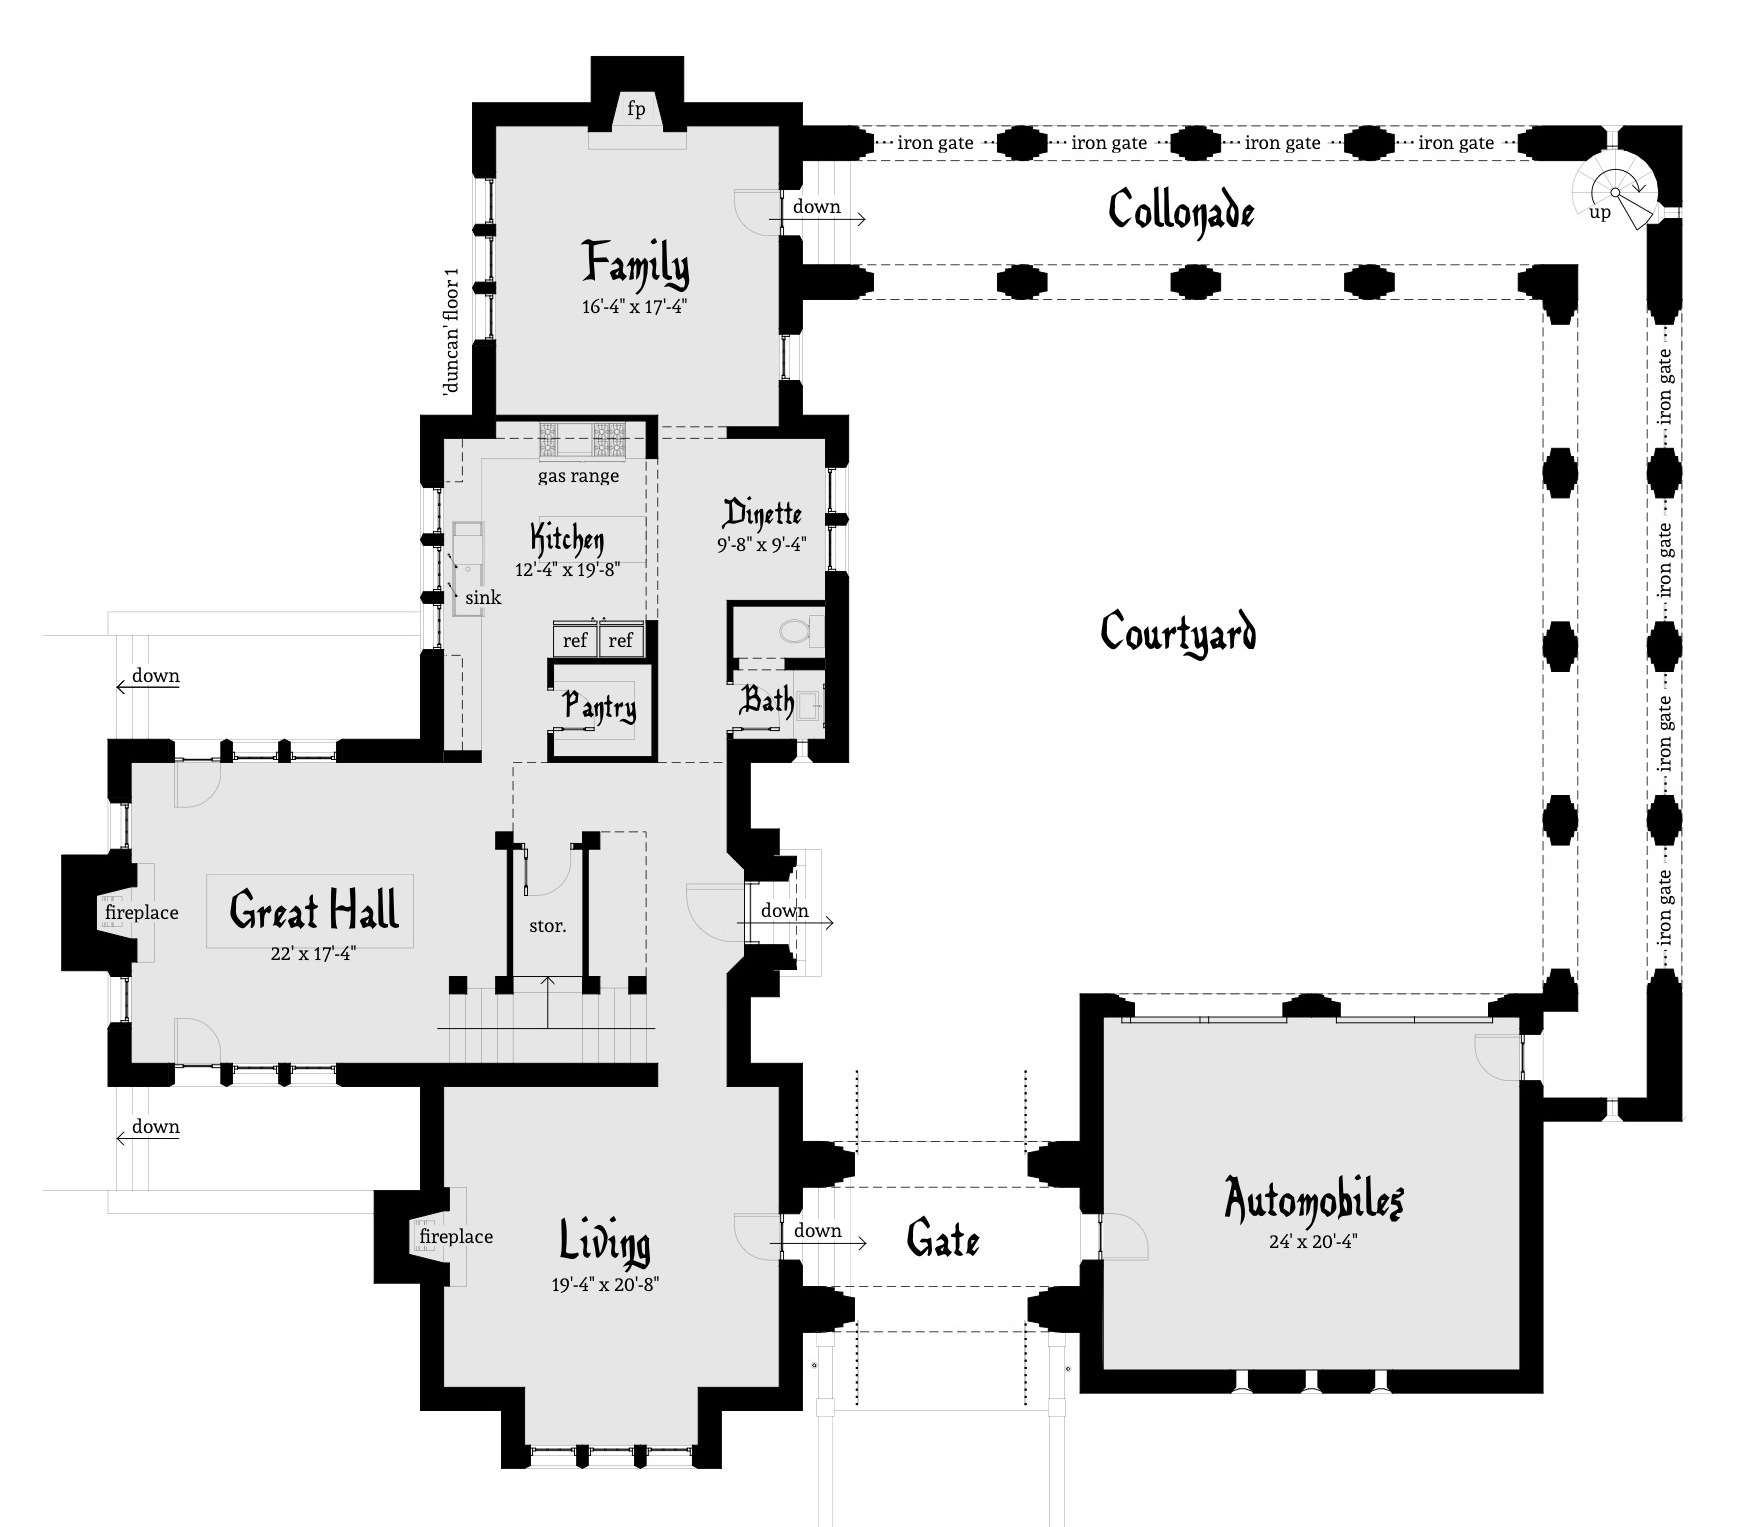 castle like house plans. Duncan Castle Plan  Tyree House Plans